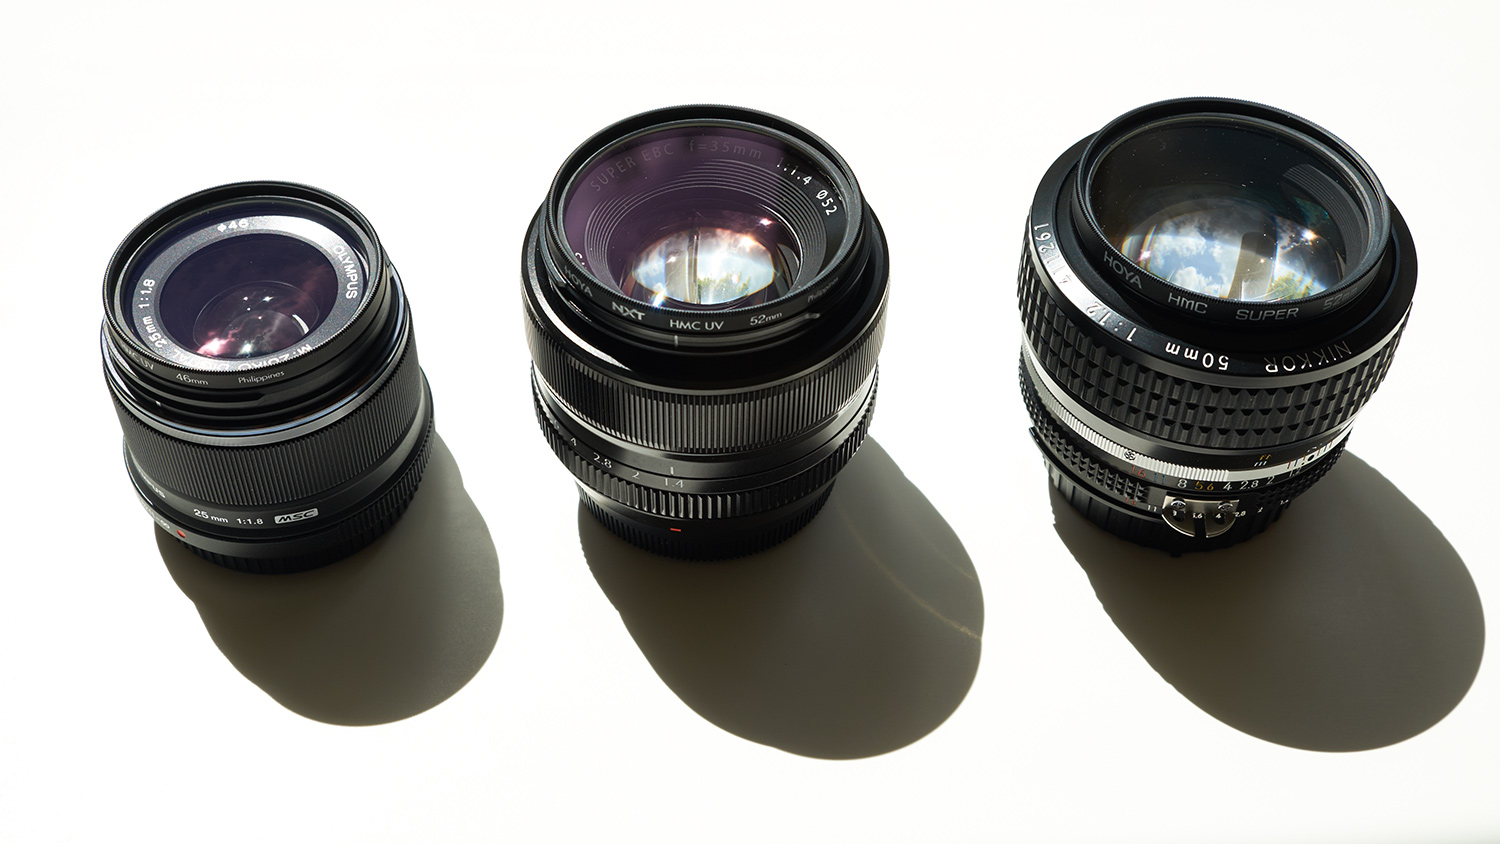 Three lenses with the same angles of view but for different sized image sensors. L to R: Olympus 25mm f/1.8, Fujifilm XF 35mm f/1.4, Nikon AIS 50mm f/1.2